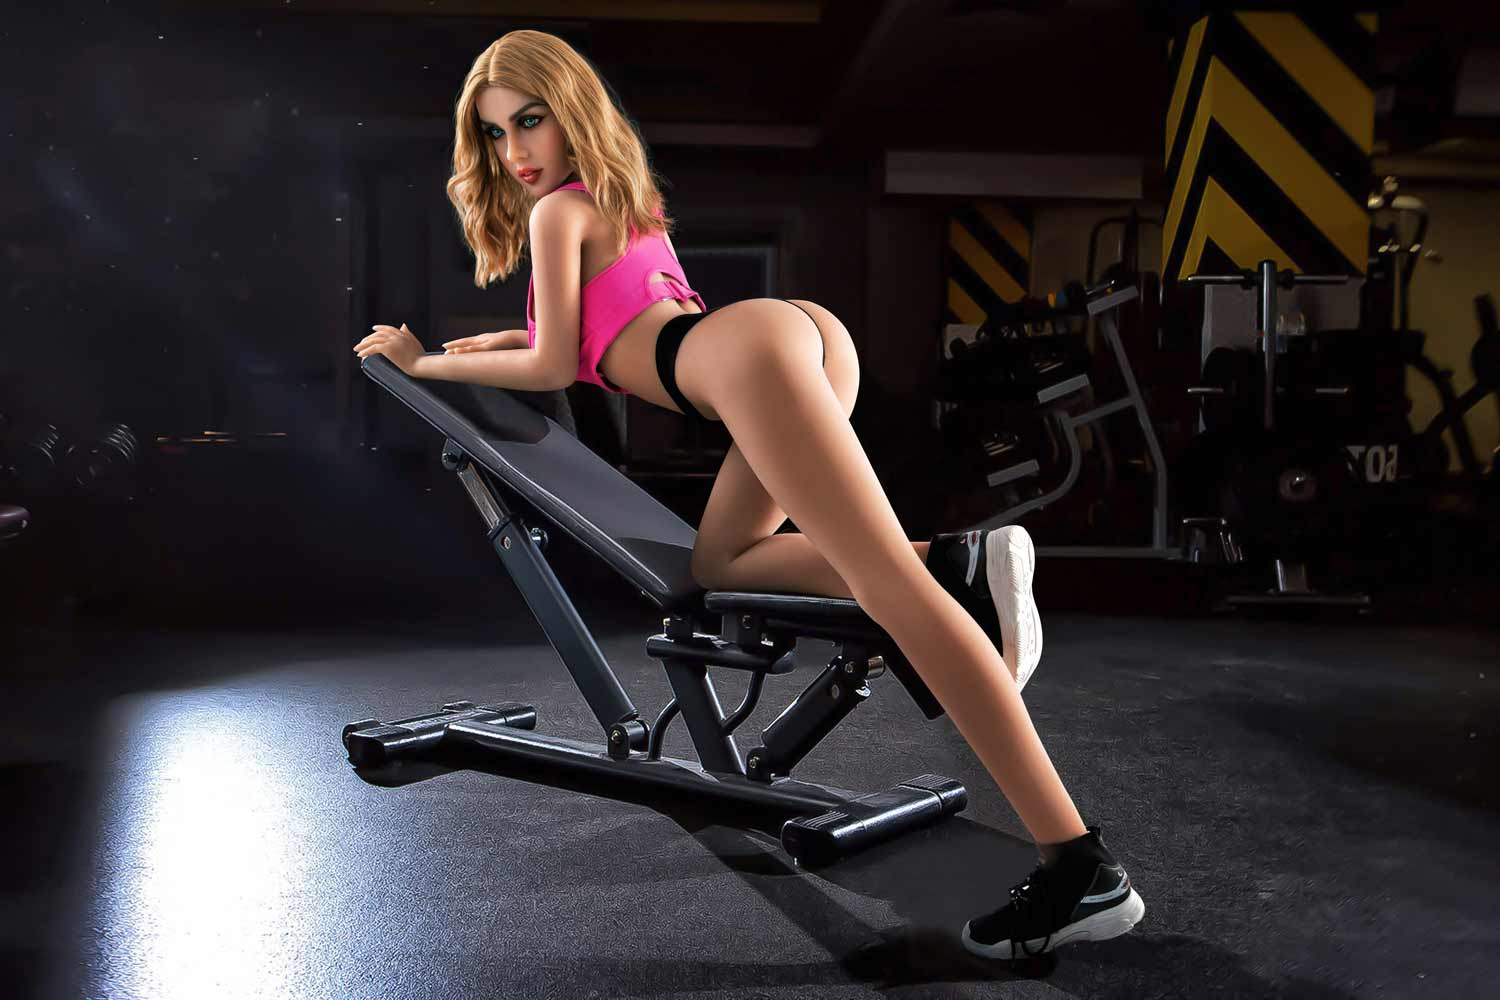 Sex doll kneeling in exercise chair